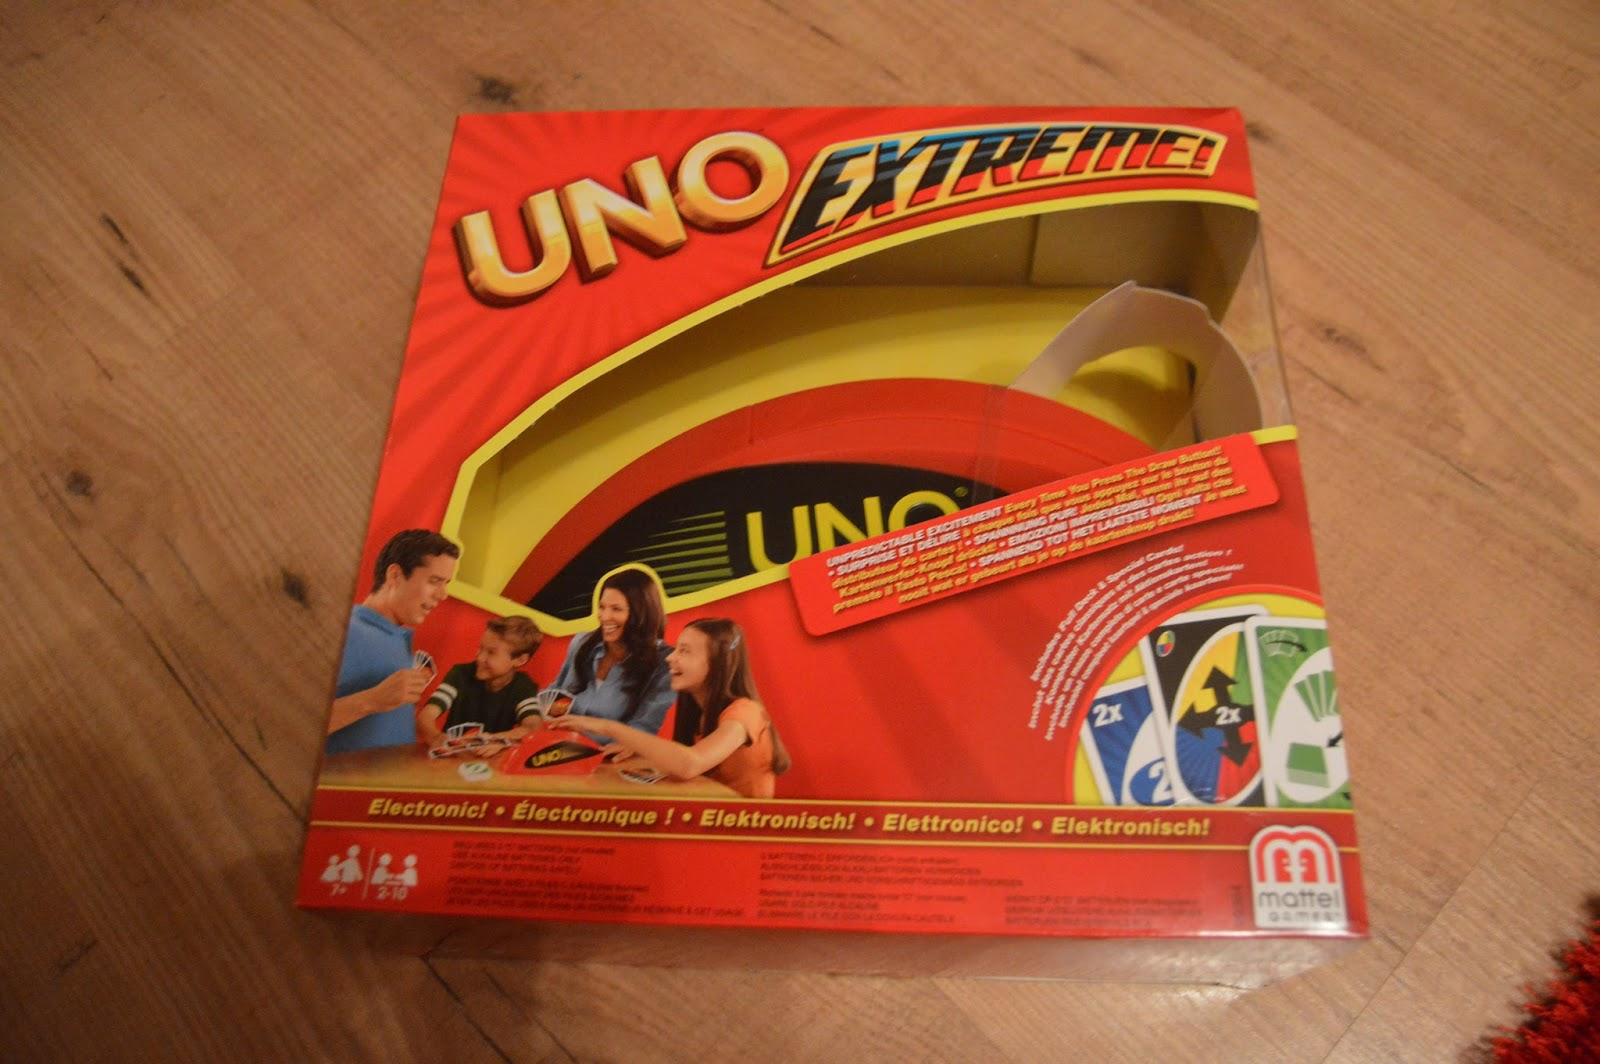 uno extreme review playdays and runways. Black Bedroom Furniture Sets. Home Design Ideas